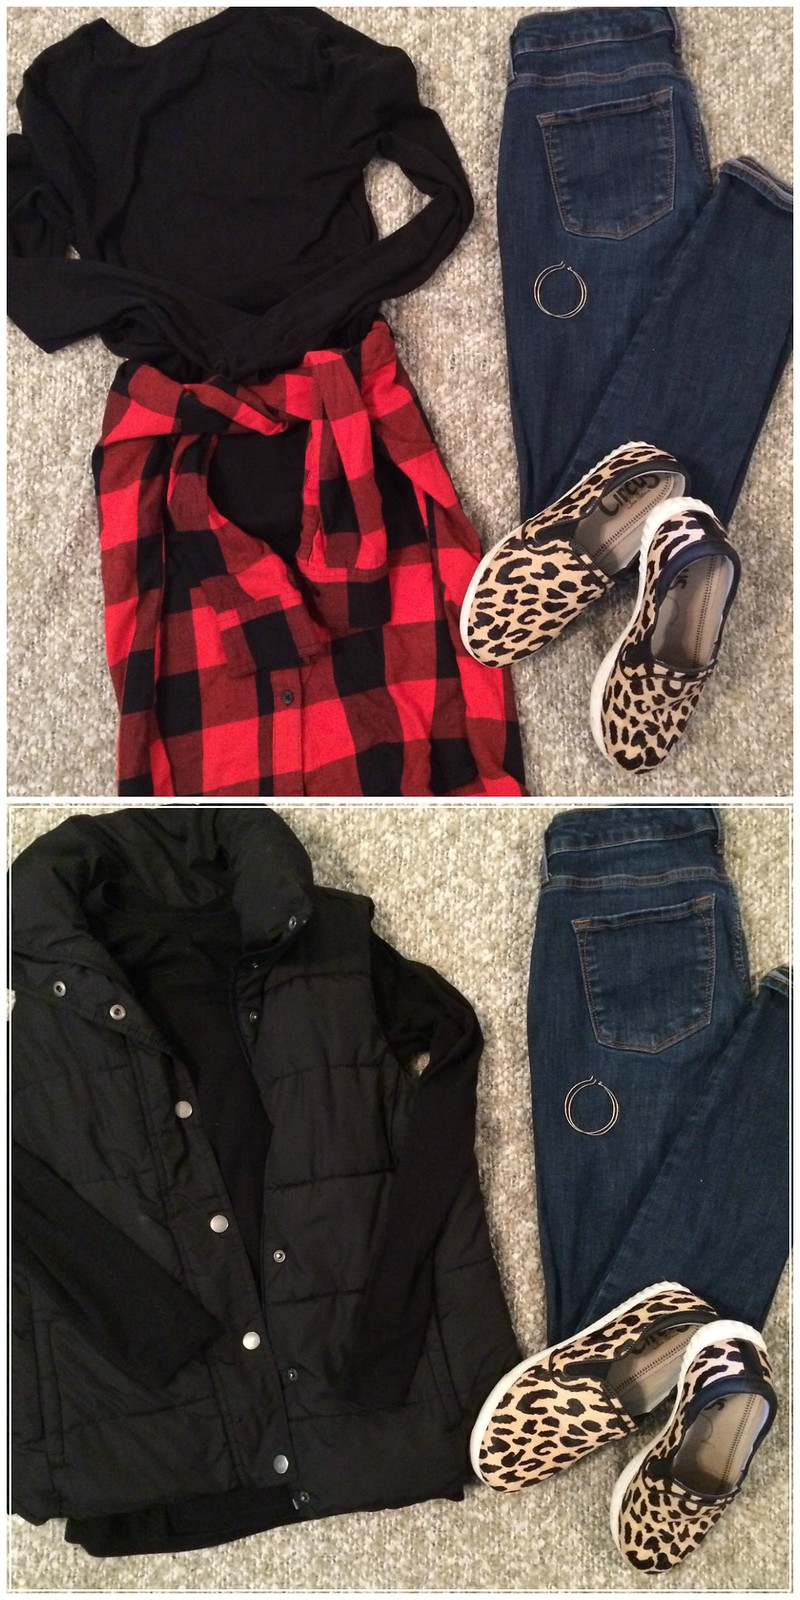 black shirt + buffalo check + black vest + leopard sneakers + skinny jeans + gold hoops